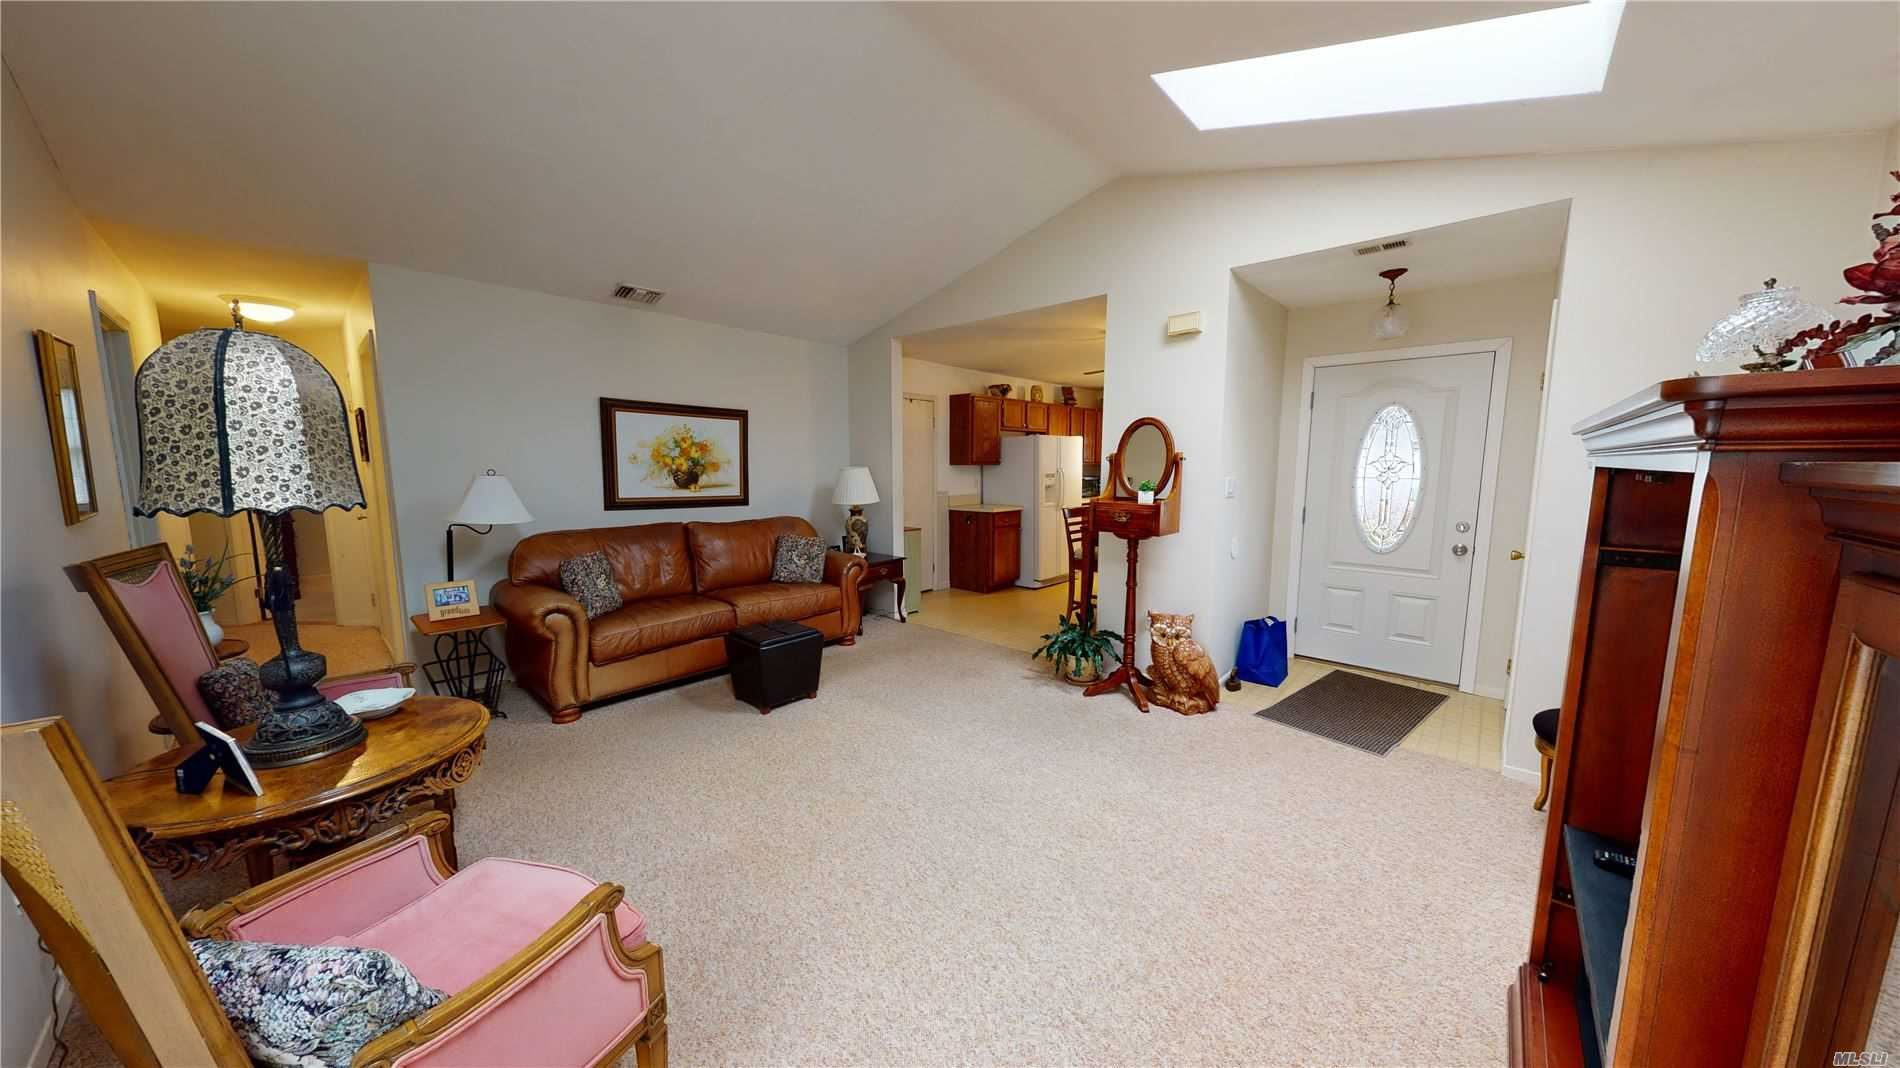 4 Turnberry Court, Middle Island, NY 11953 - MLS#: 3213764